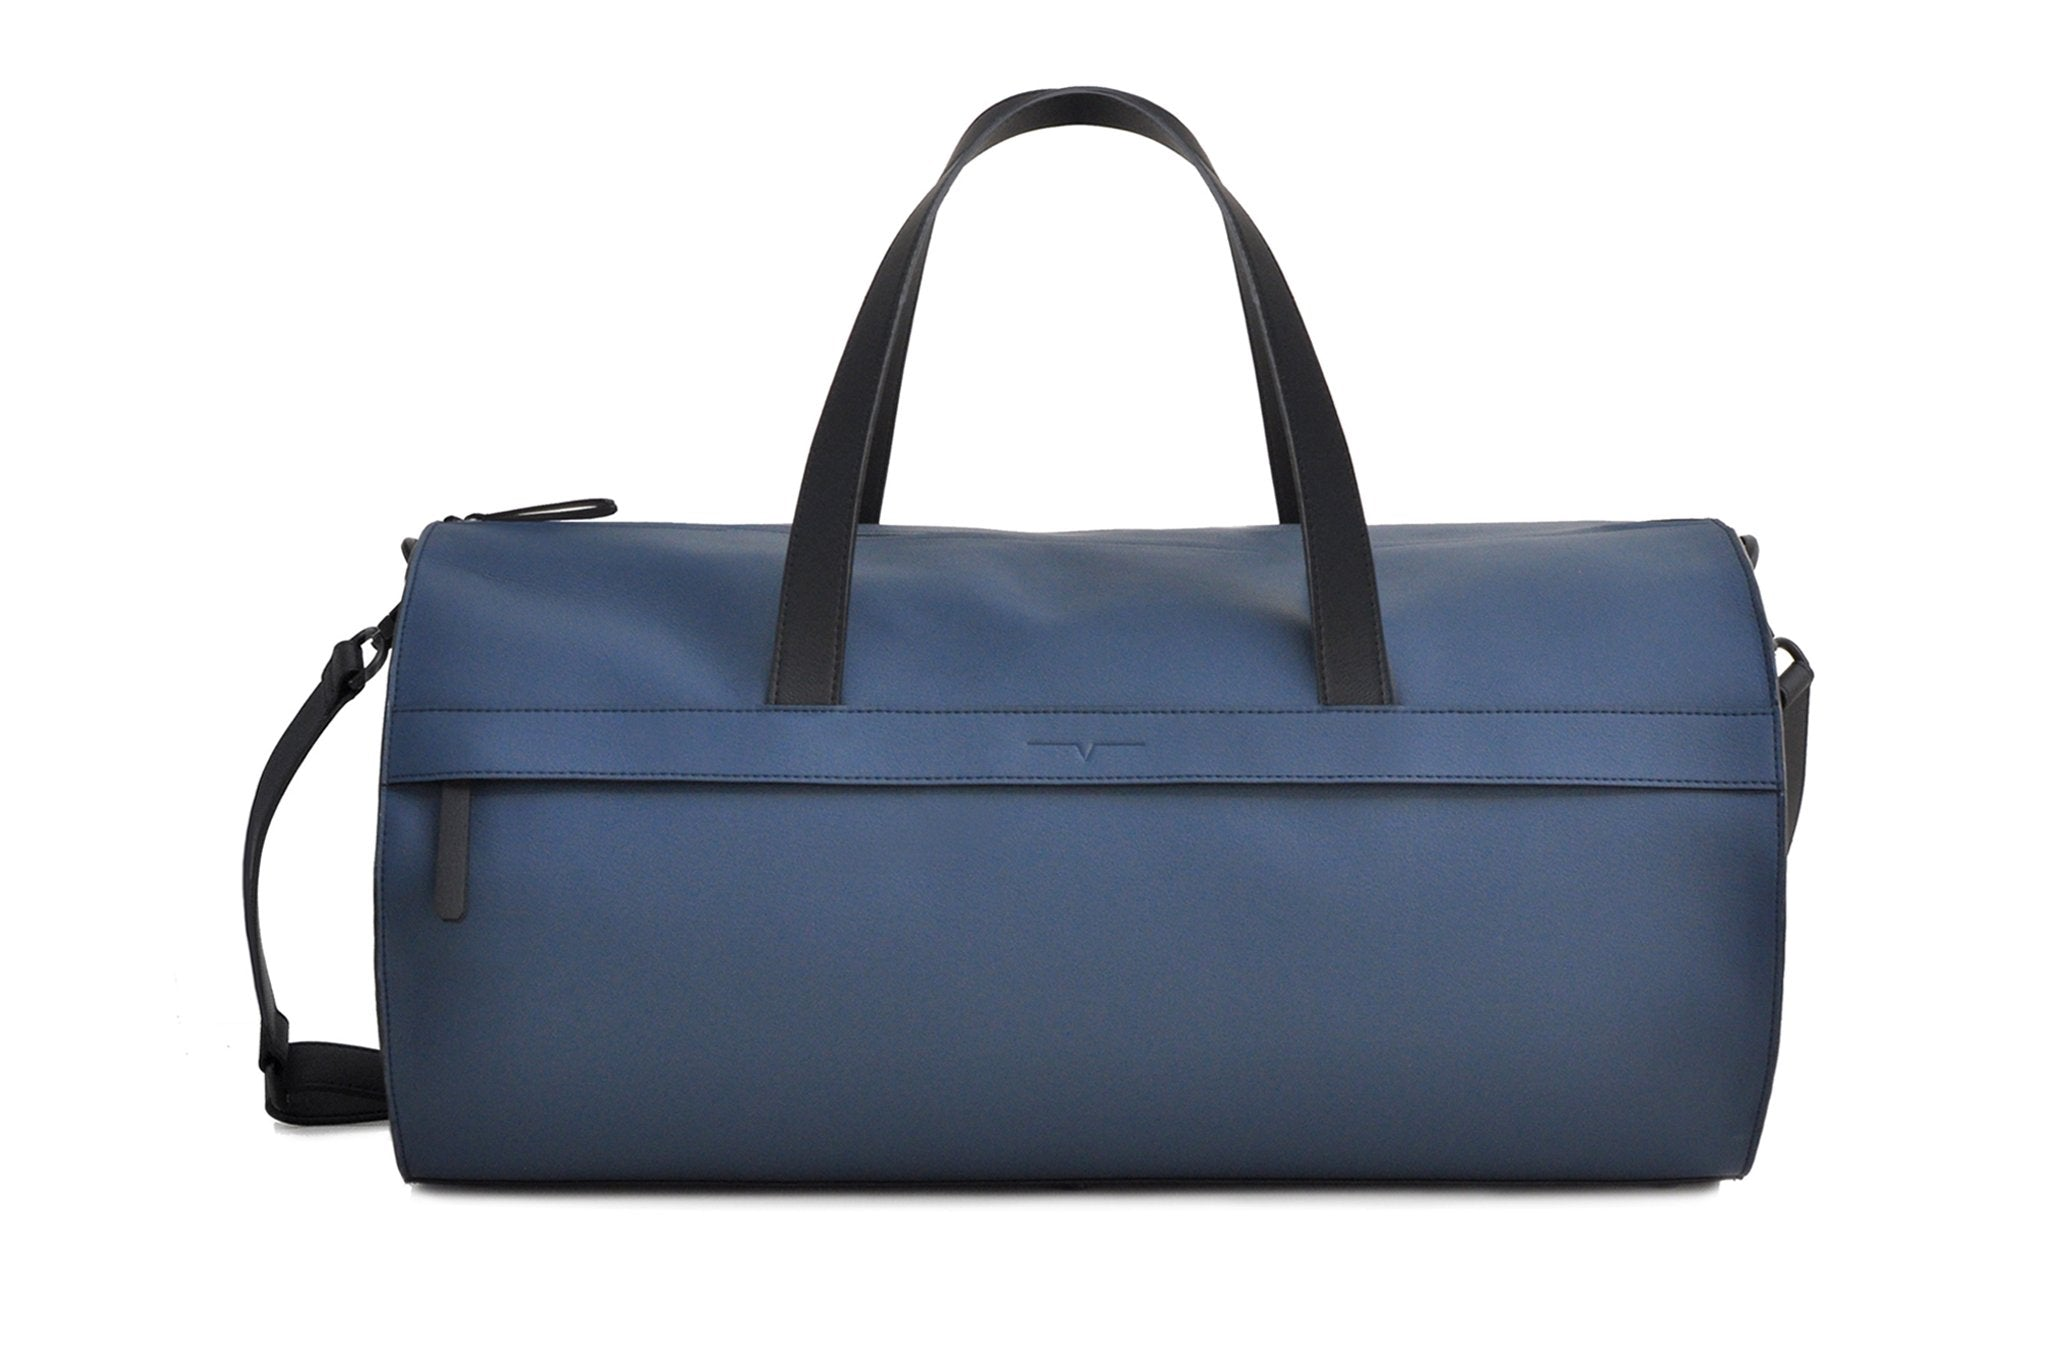 Image of The Duffel